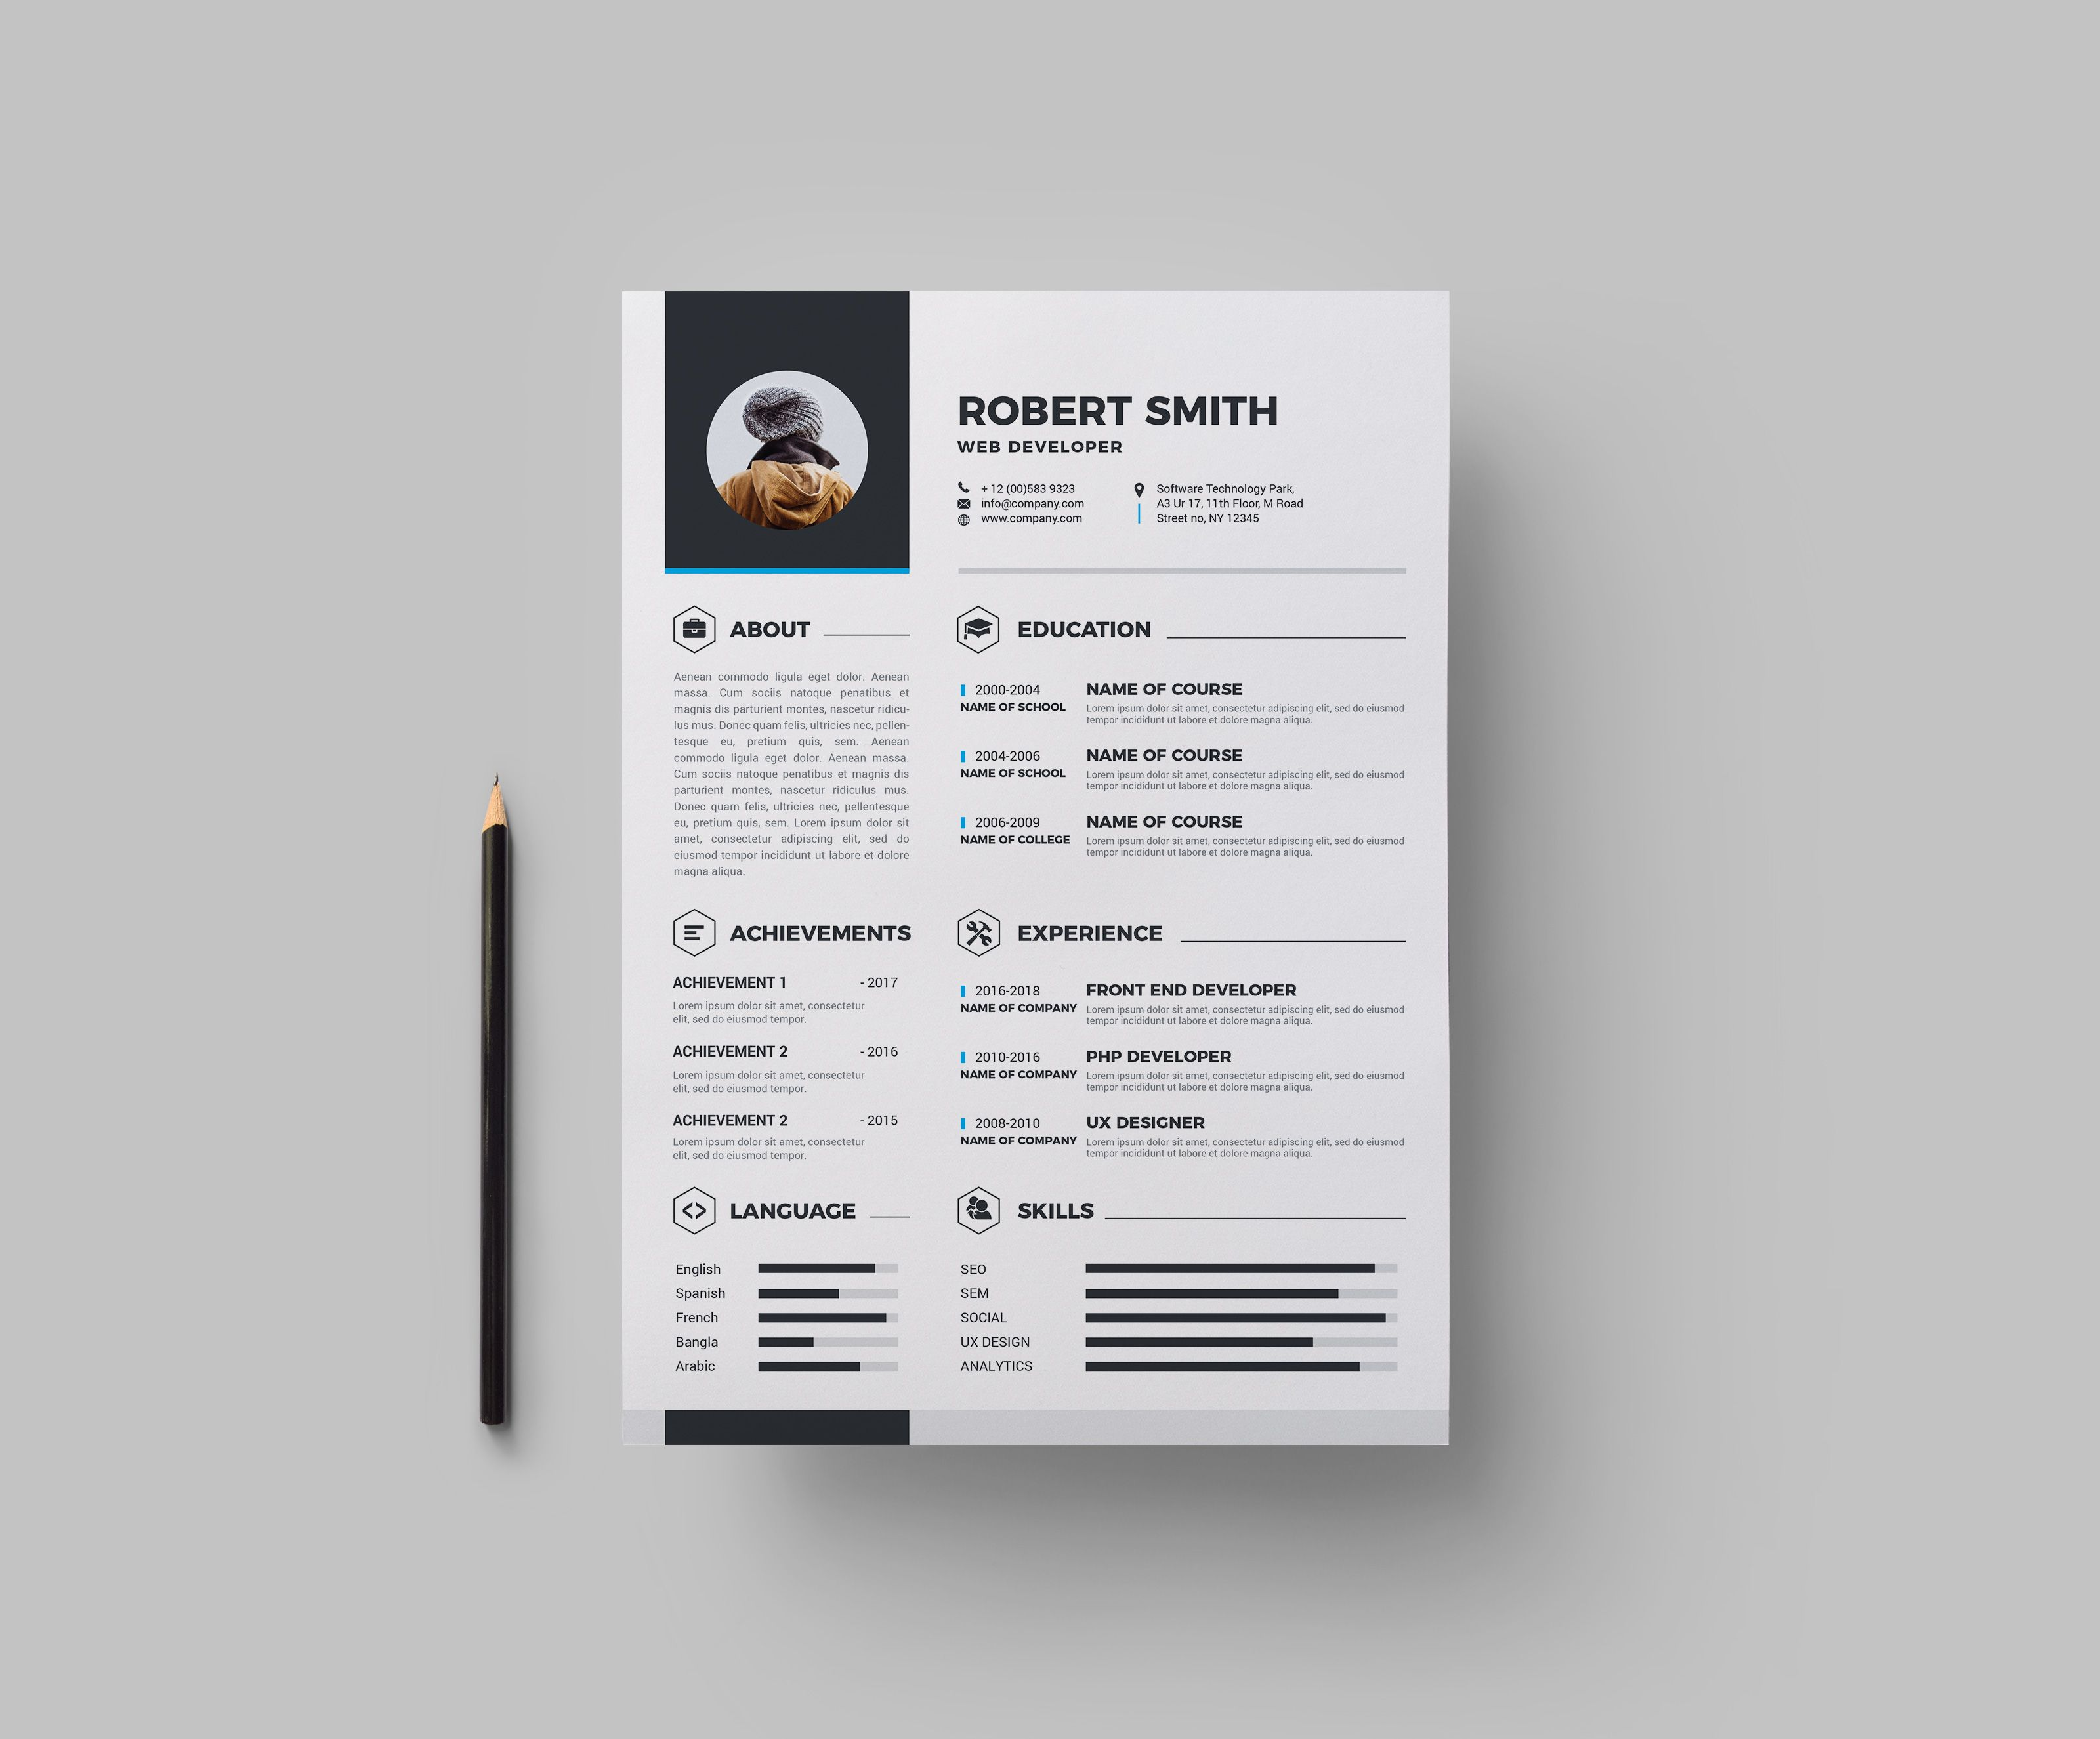 Halley Premium Resume Template - Resume design template, Resume templates, Resume template, Resume design, Templates, Resume - Halley Premium Resume Template  The perfect way to make the best impression  Strong typographic structure and very easy to use and customize    The resume have a very organized